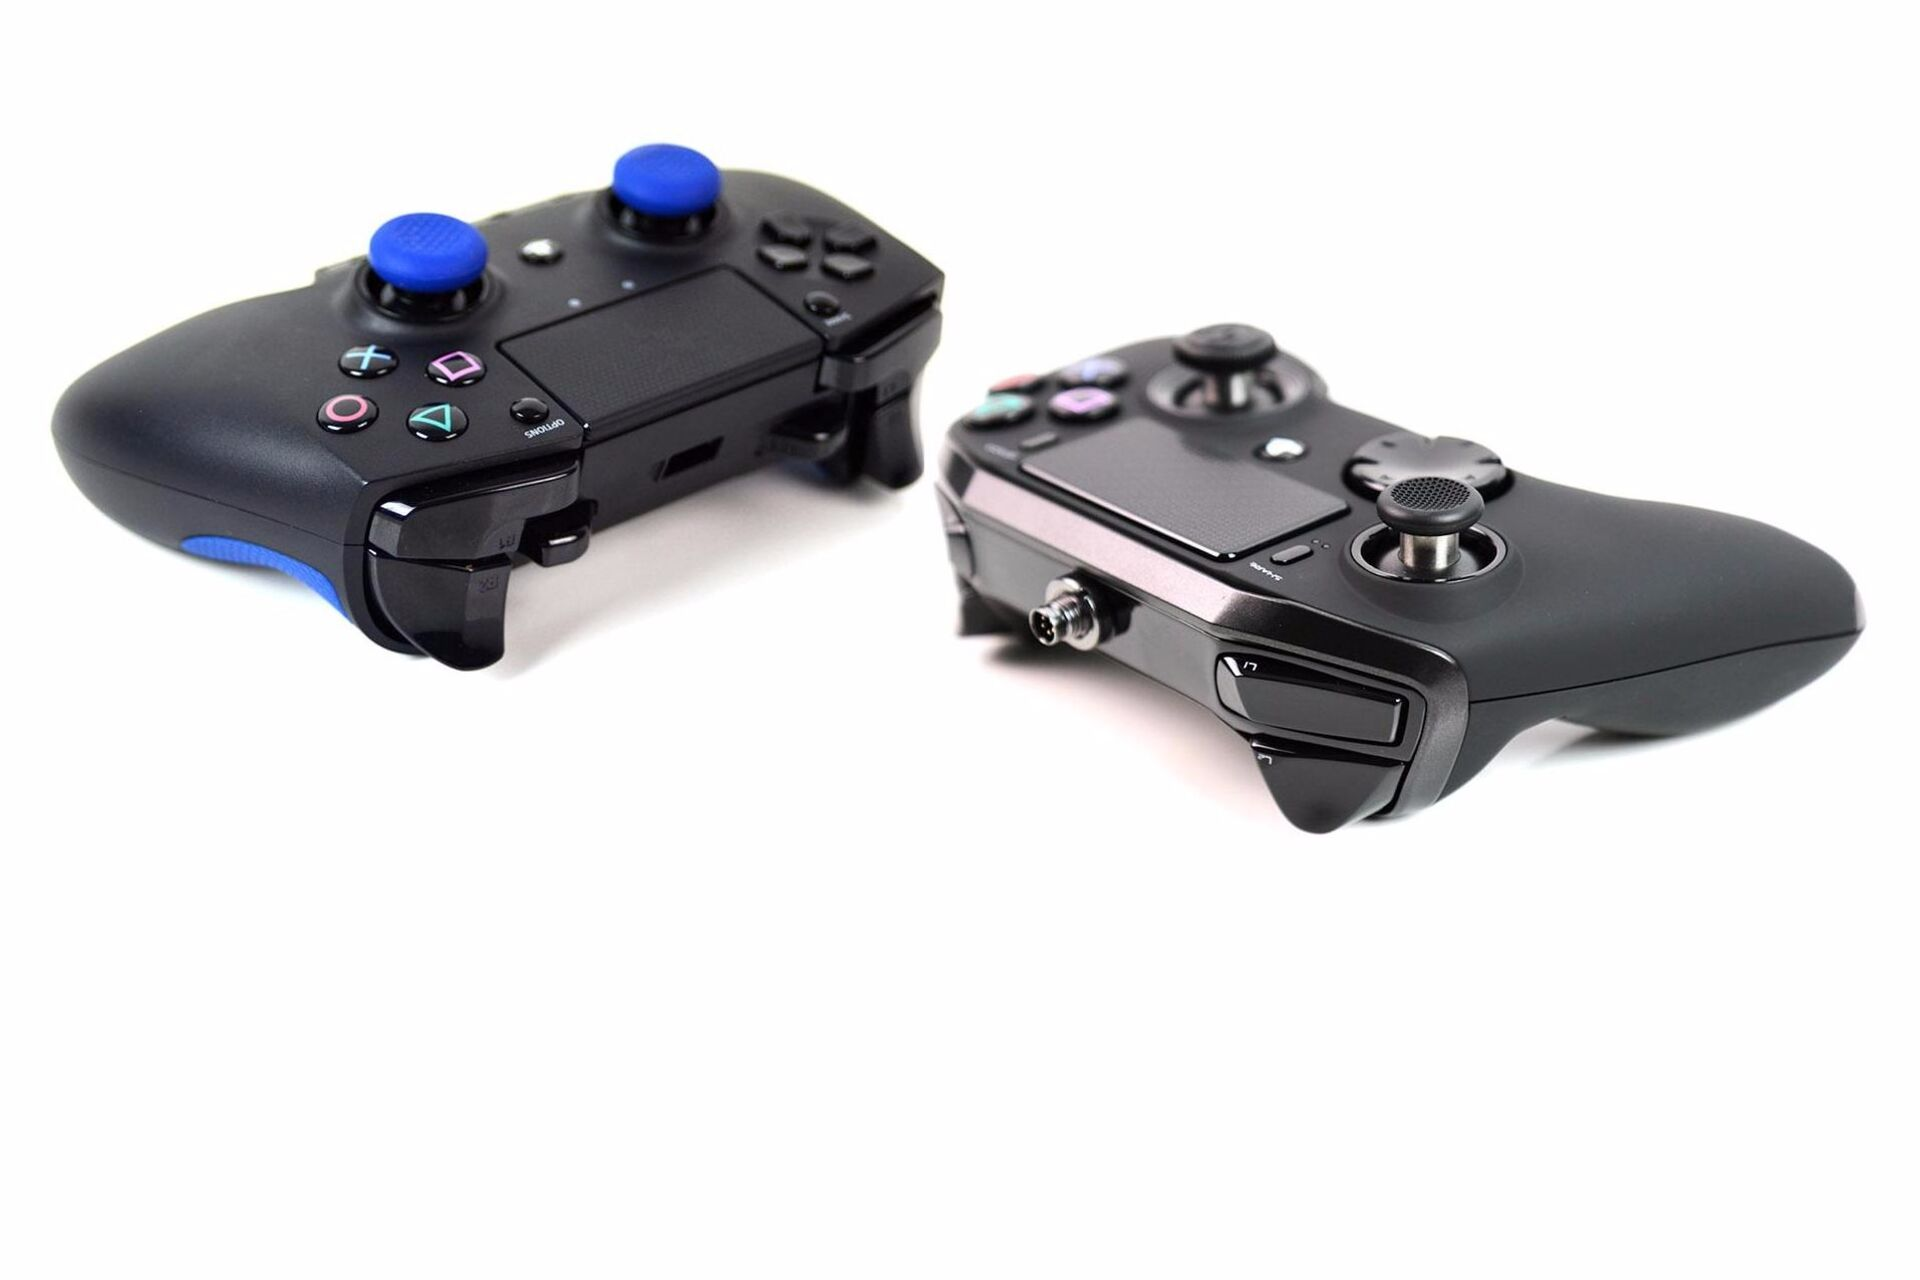 Ps4 Premium Joypad Face Off Razer Raiju Vs Nacon Revolution Pro Eurogamer Net Take your play to competitive esports level with these officially licensed controllers designed for pro gamers and optimised for ps4. razer raiju vs nacon revolution pro